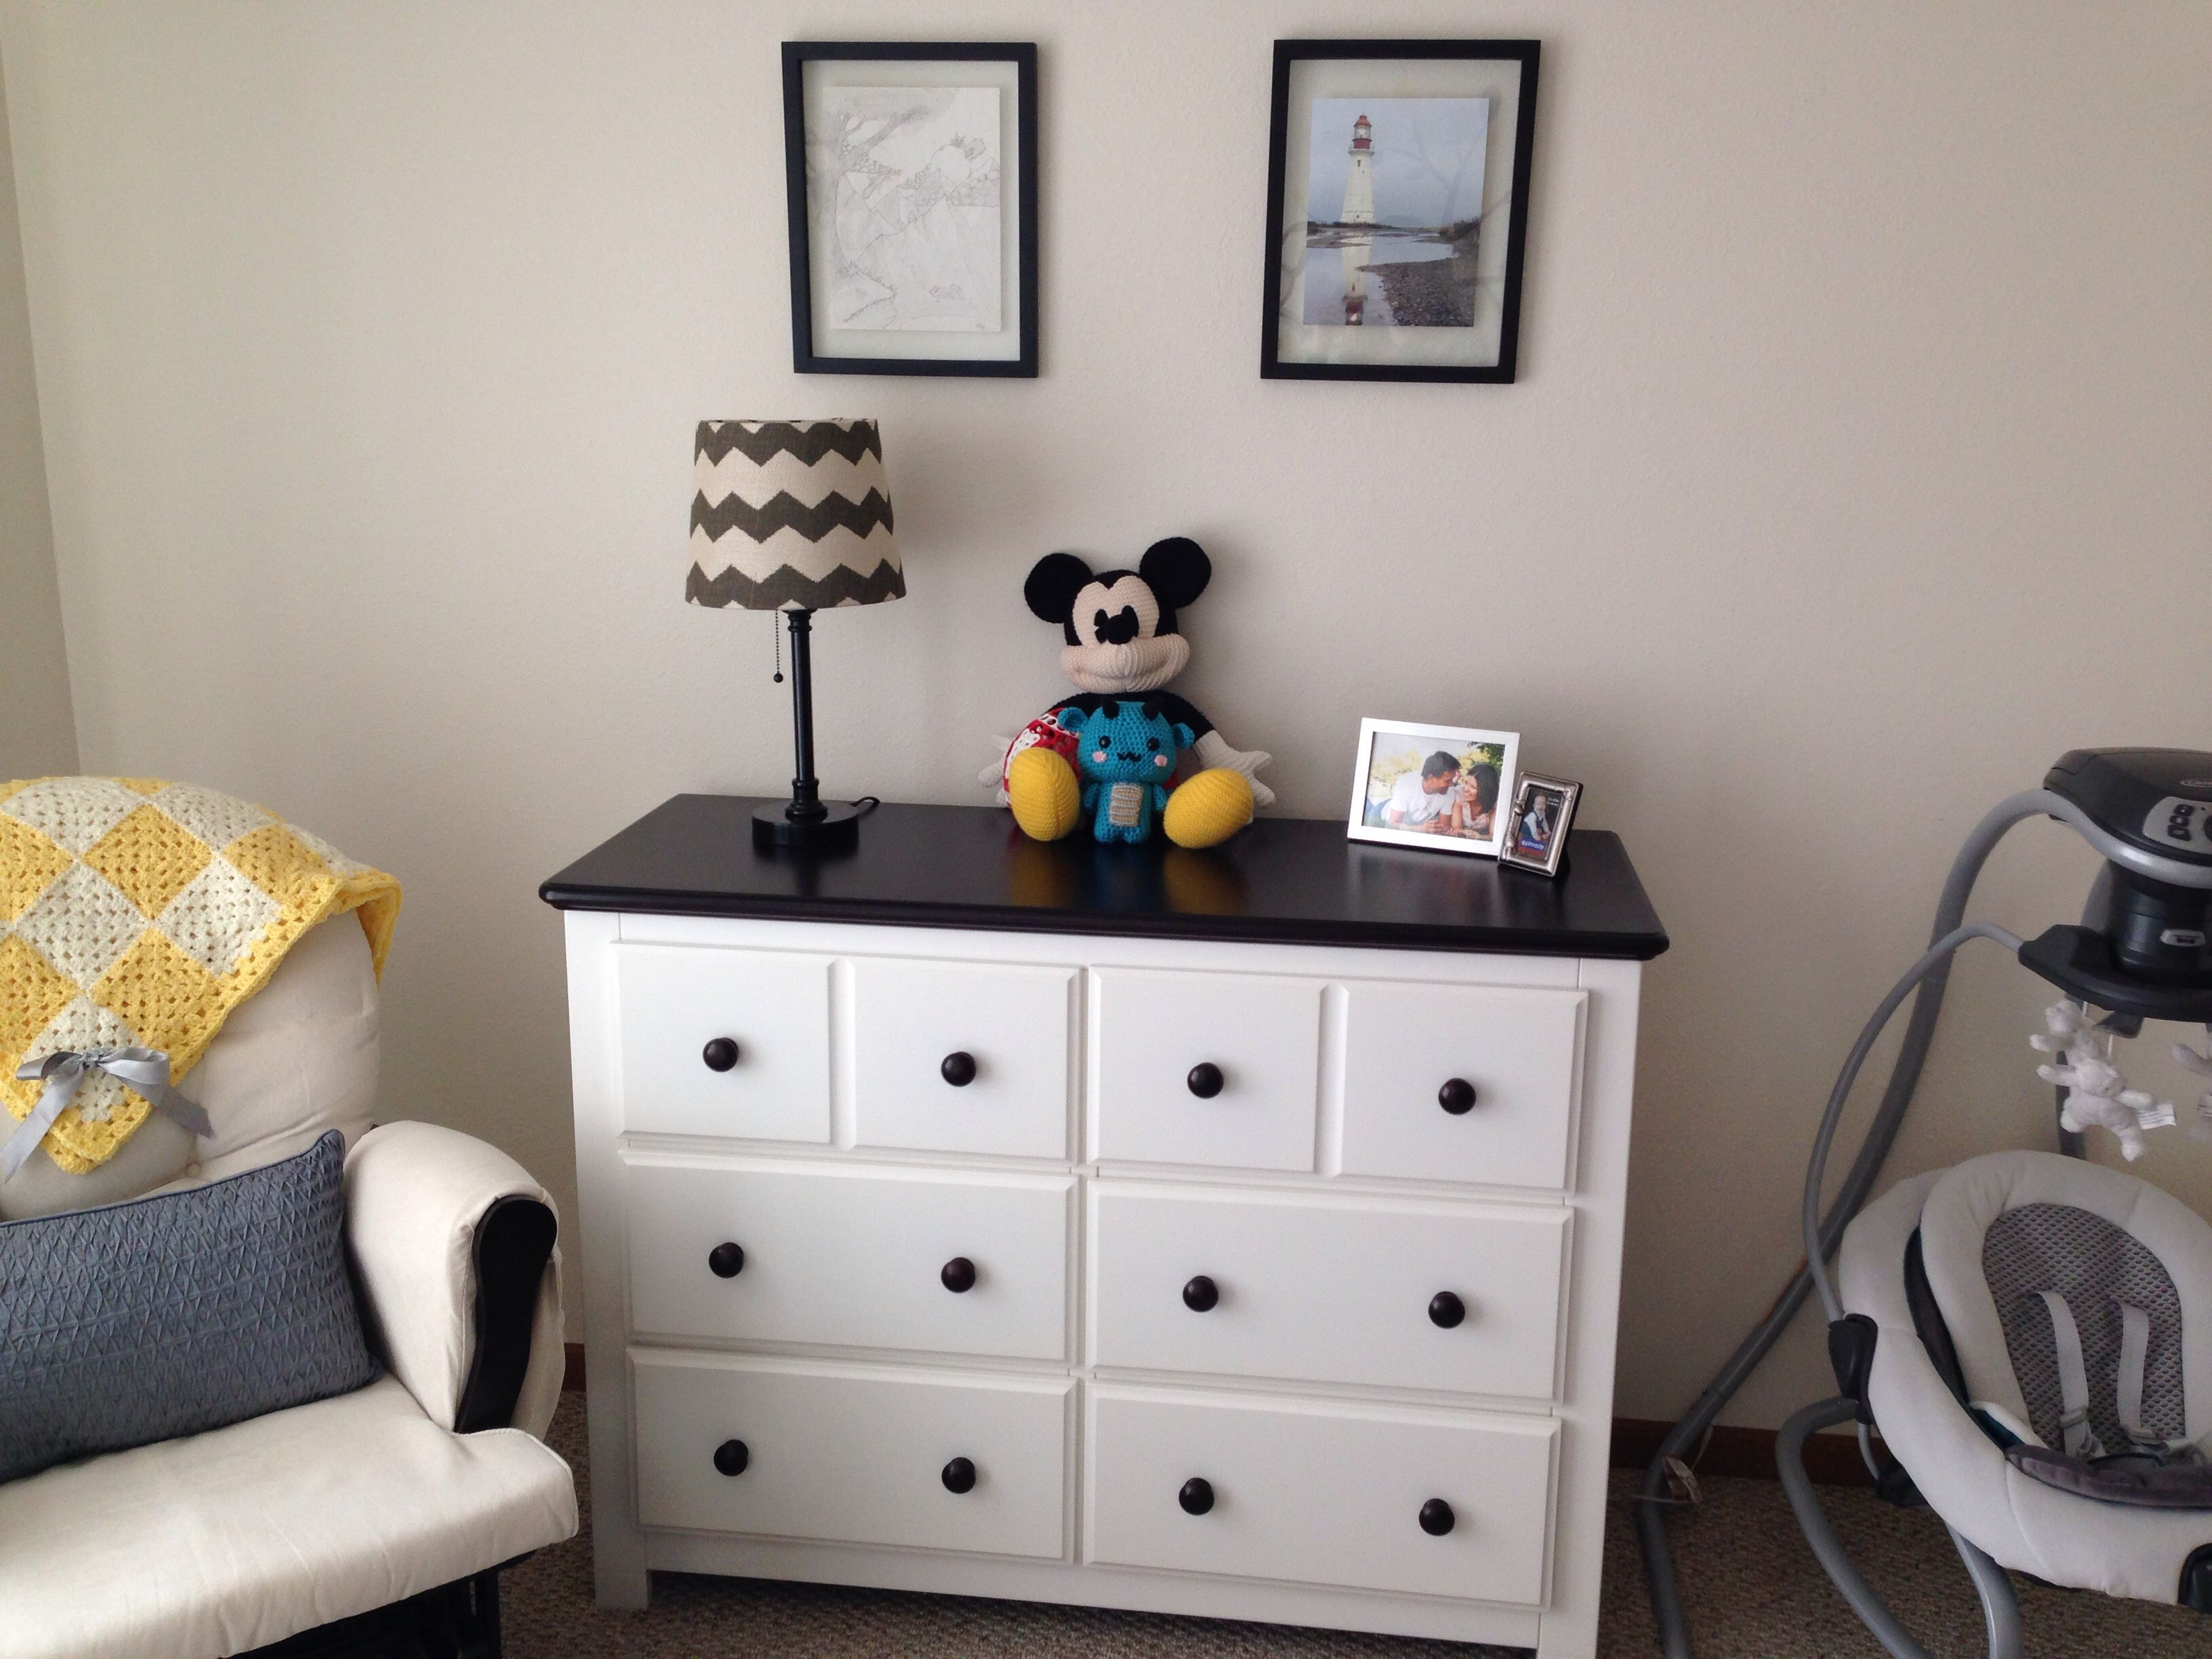 Yellow And Grey Nursery Glider And Ottoman From Burlington Coat Factory Dresser From Babies R Dresser As Nightstand Glider And Ottoman Mickey Mouse Bed Set